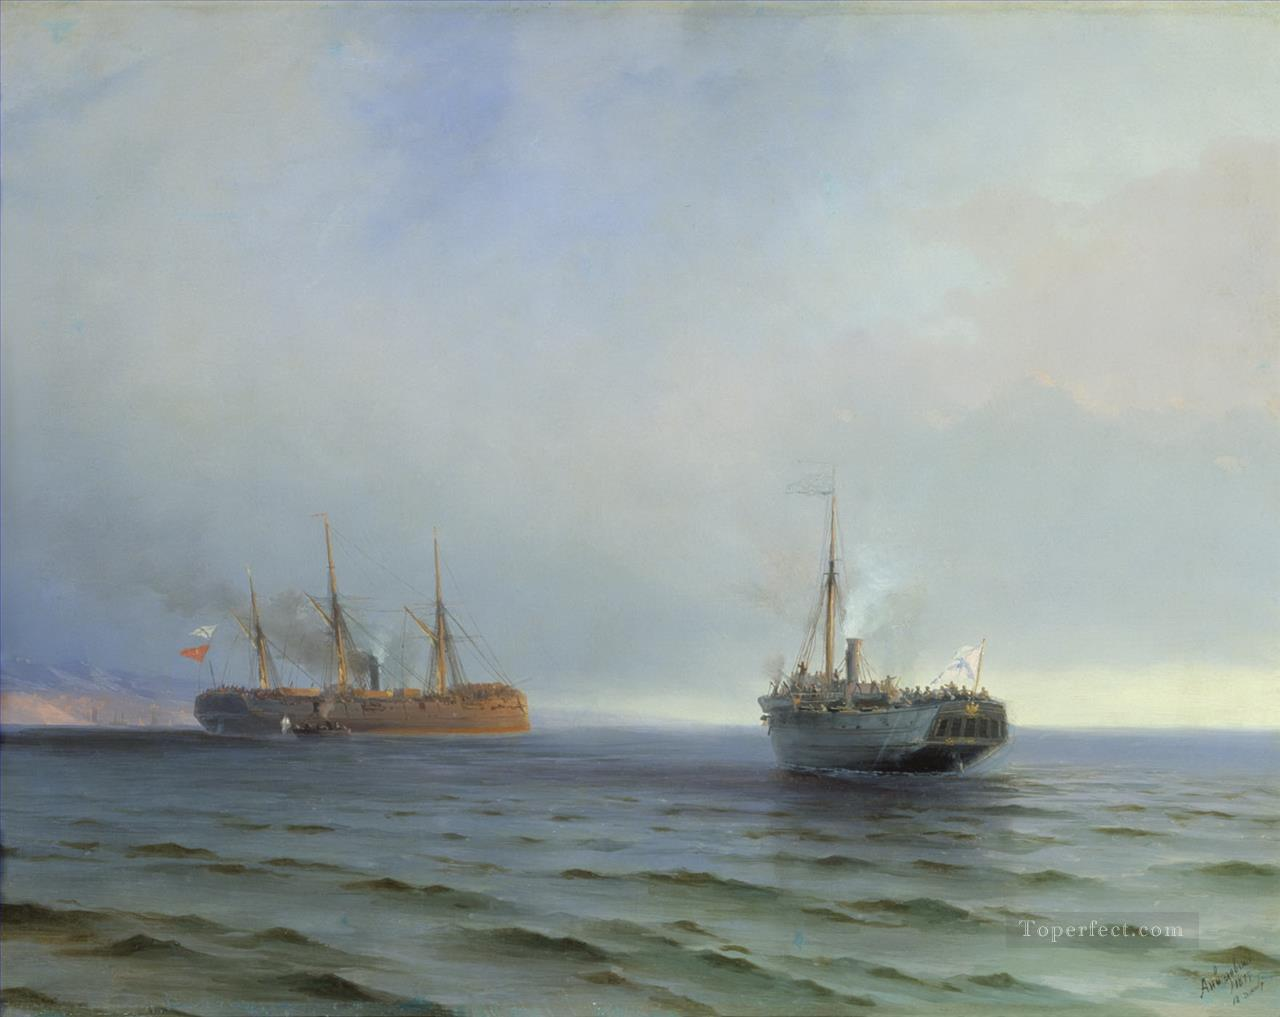 the capture of turkish nave on black sea Ivan Aivazovsky Painting in